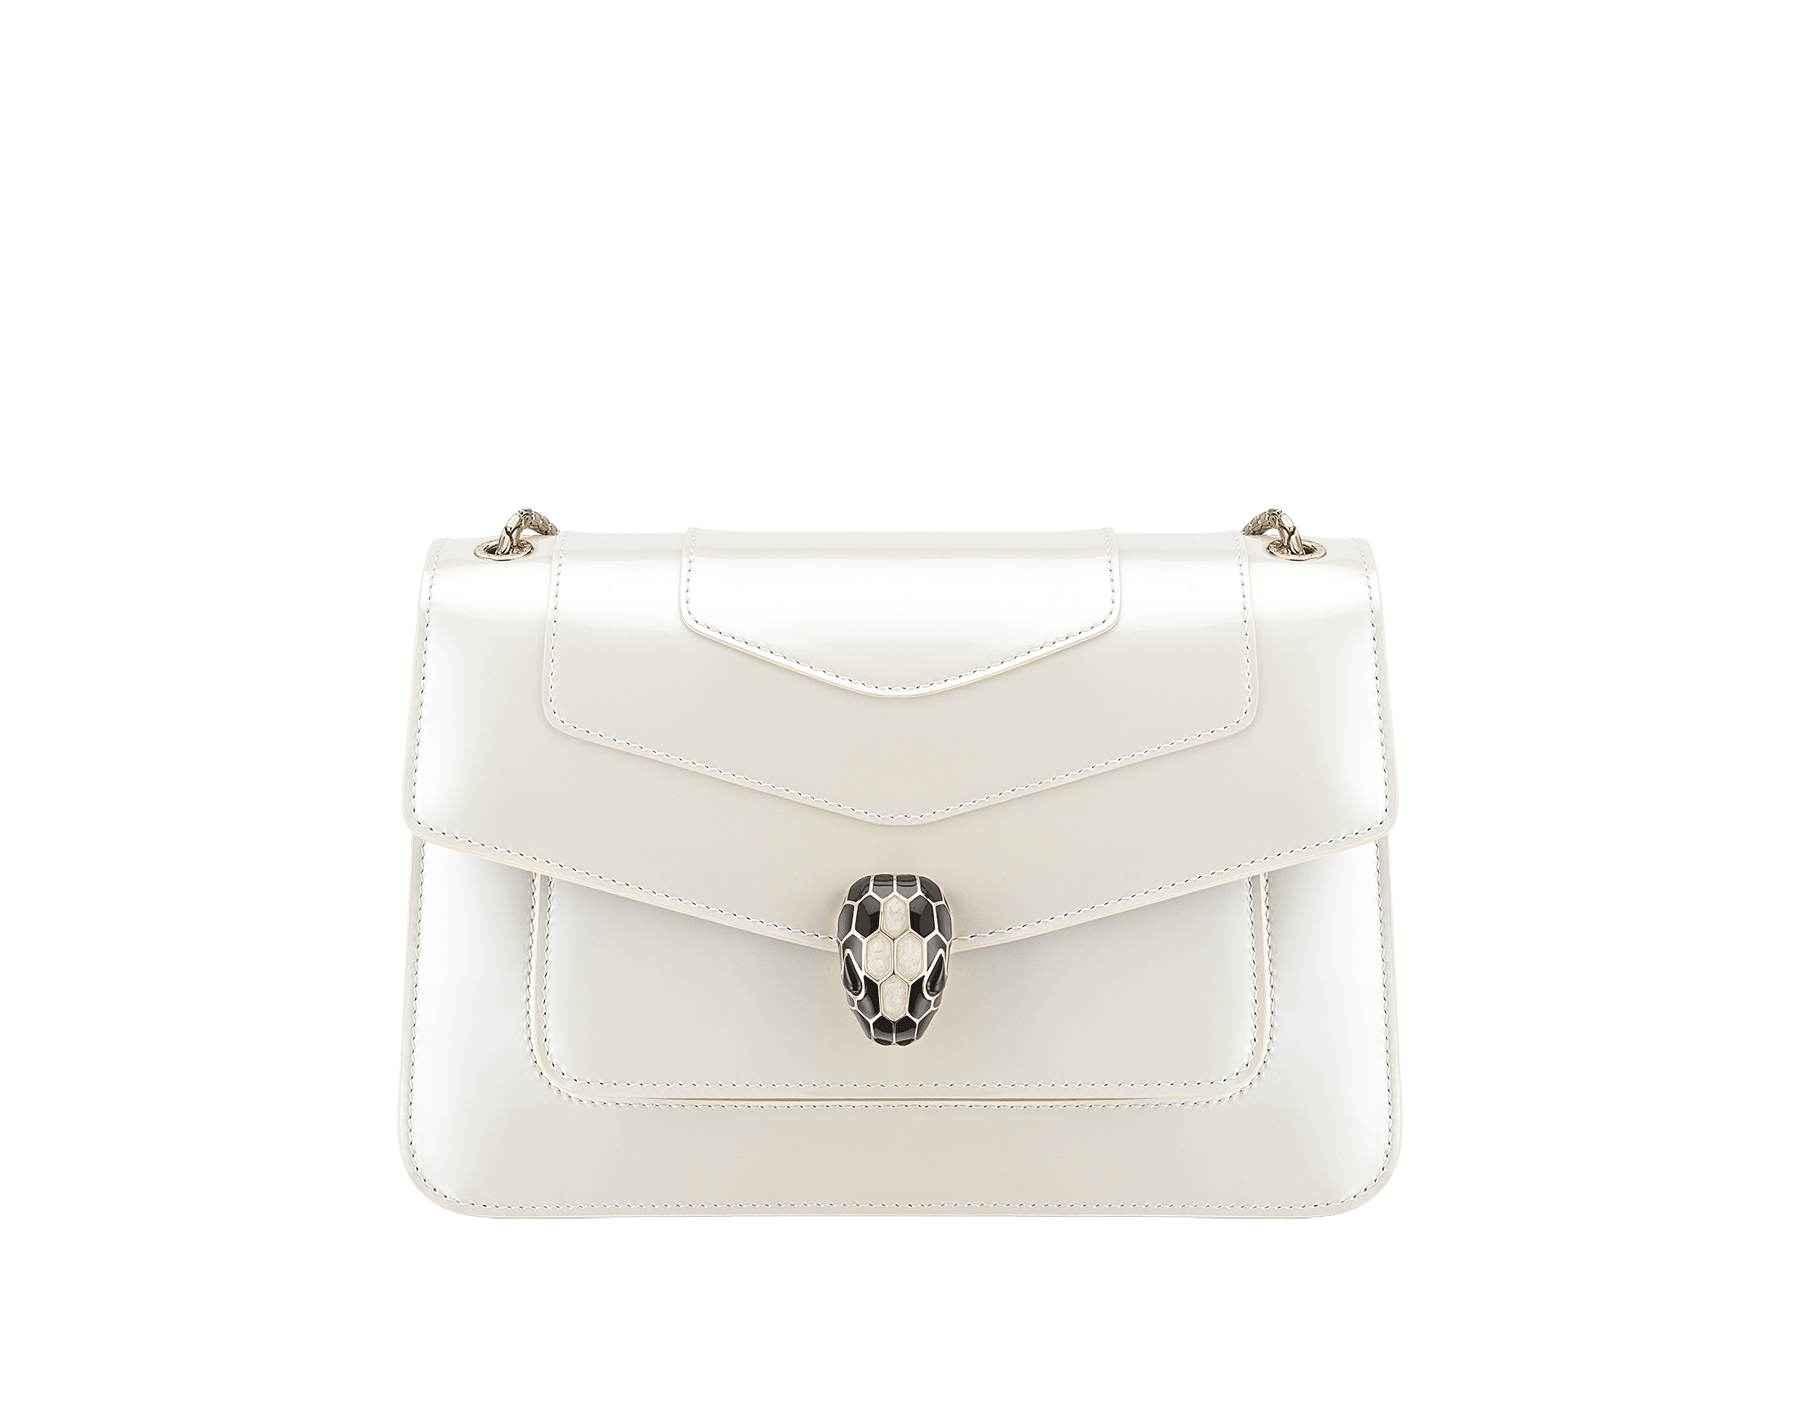 """Serpenti Forever"" crossbody bag in white agate calf leather with a varnished and pearled effect. Iconic snakehead closure in light gold plated brass enriched with black and pearled white agate enamel and black onyx eyes. 290273 image 1"